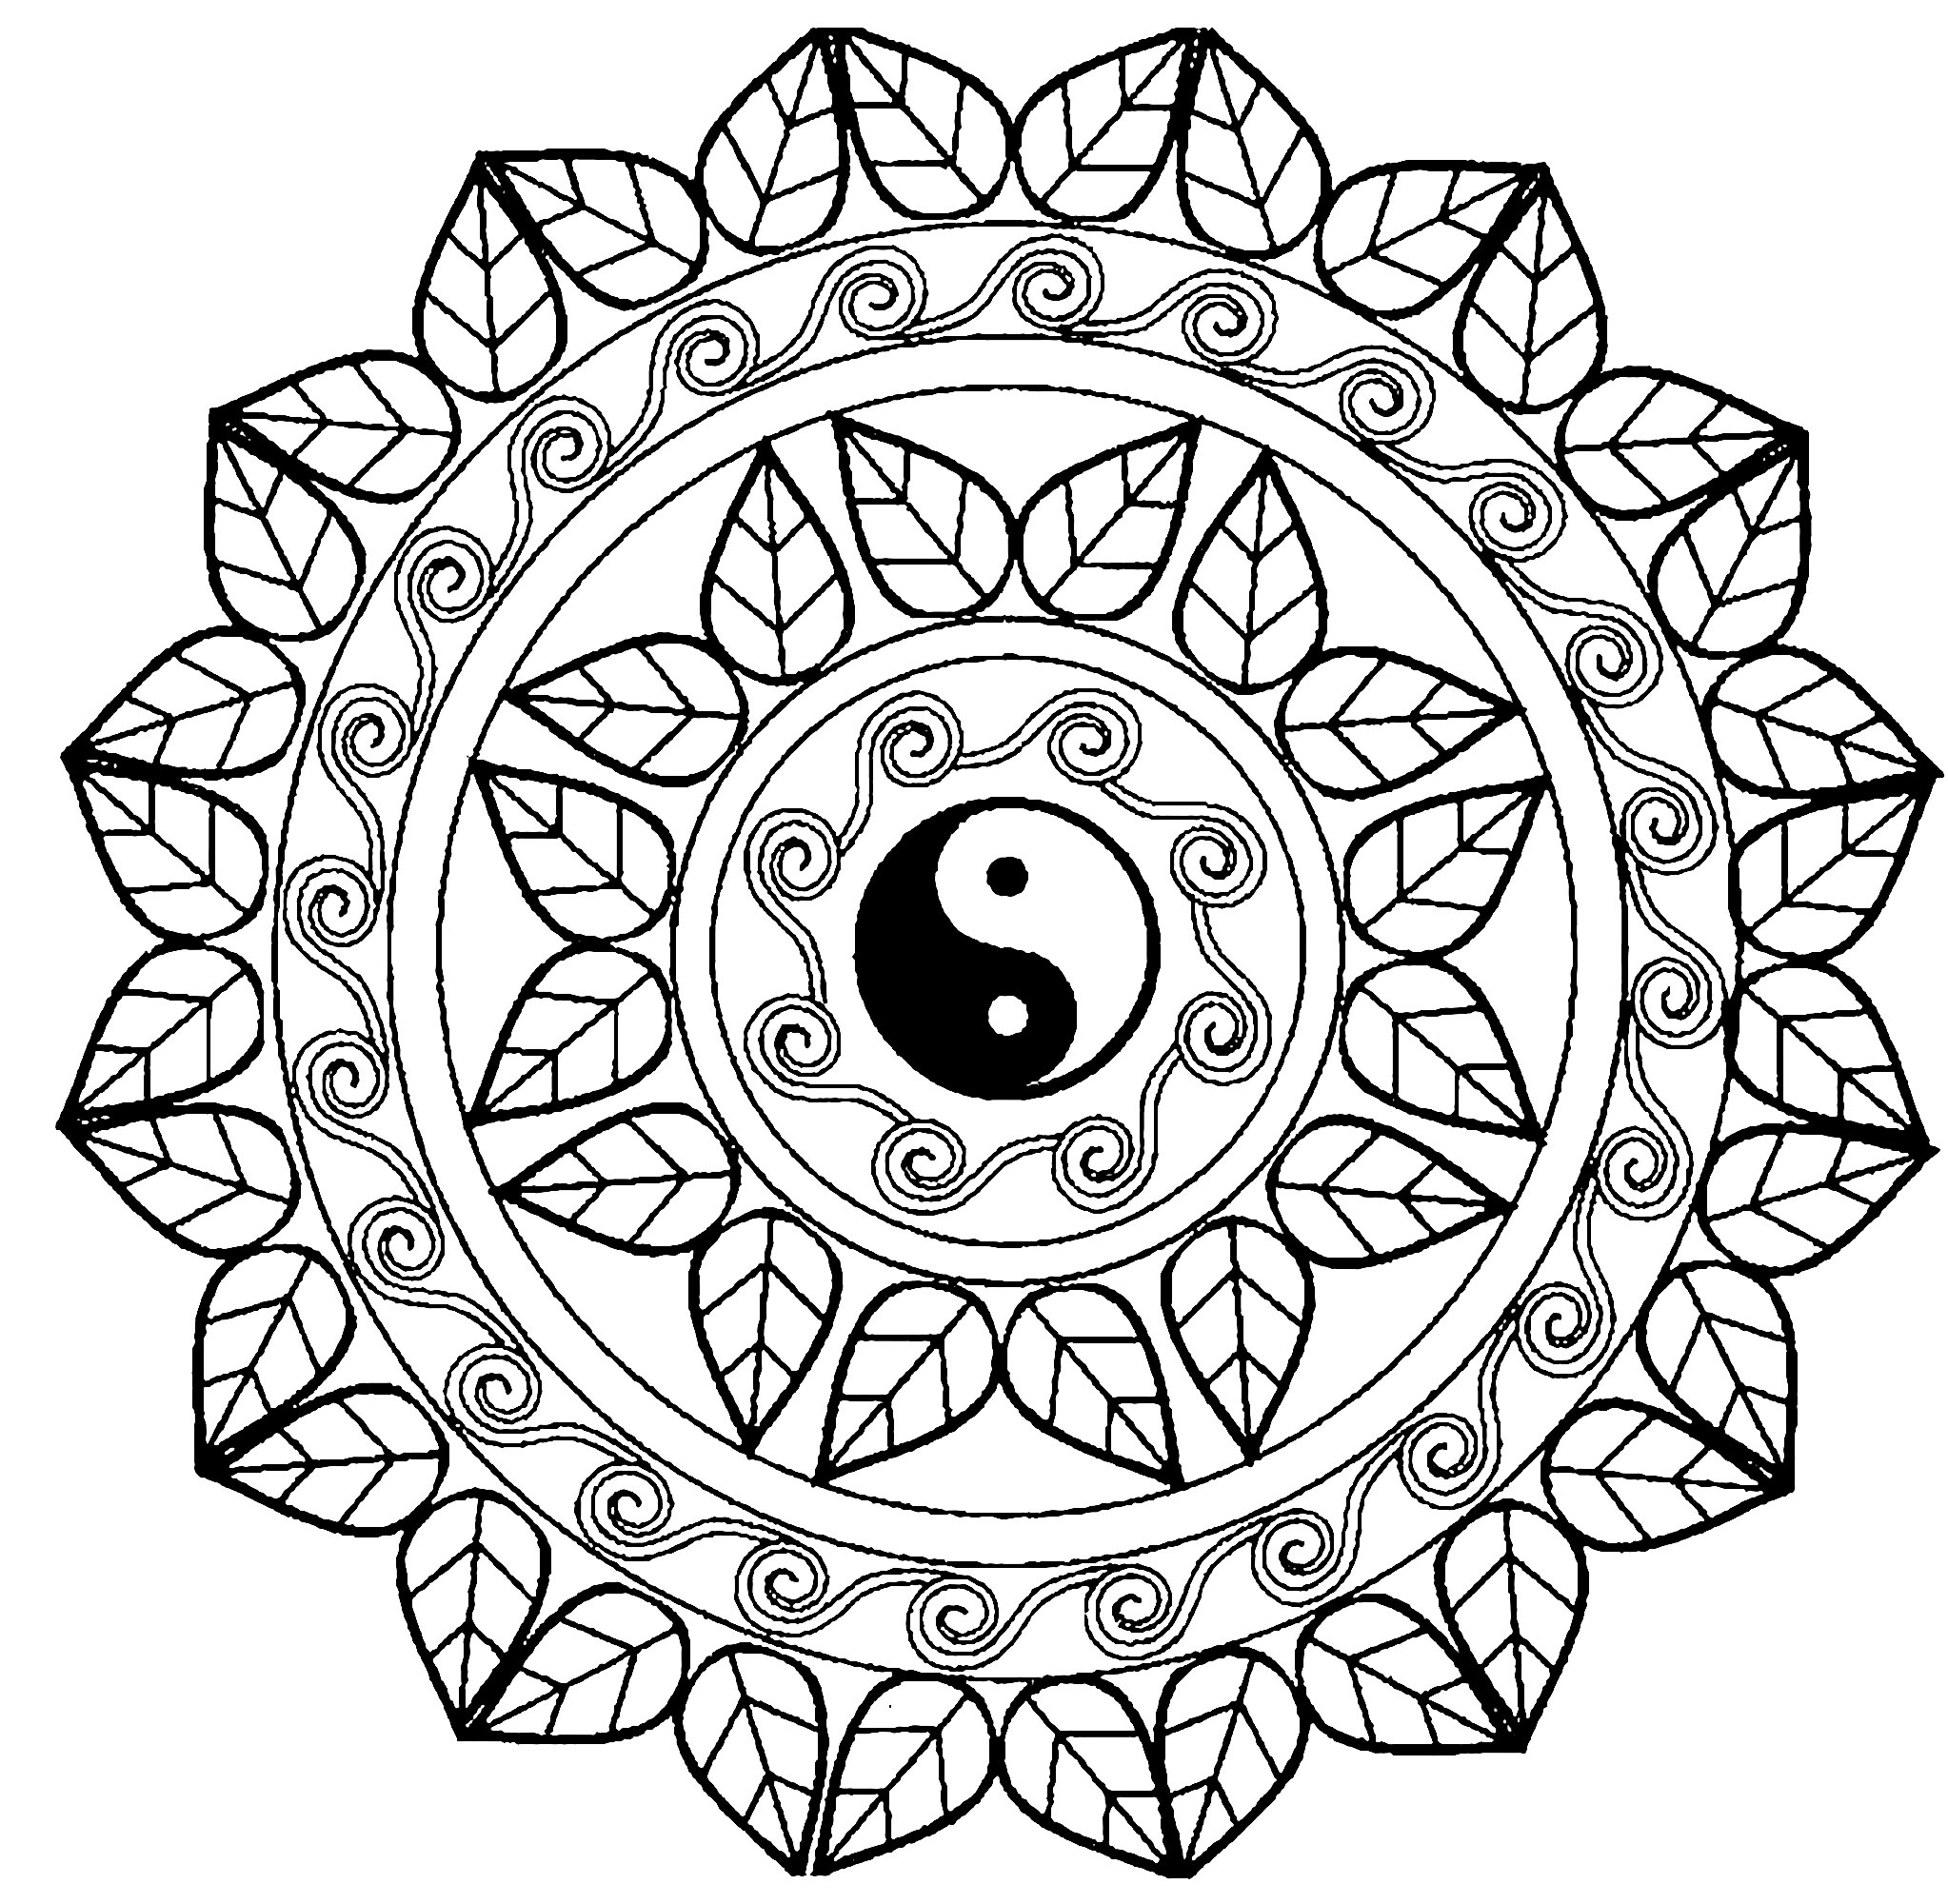 mandala colouring pages for kids flower mandala coloring pages best coloring pages for kids pages kids mandala for colouring